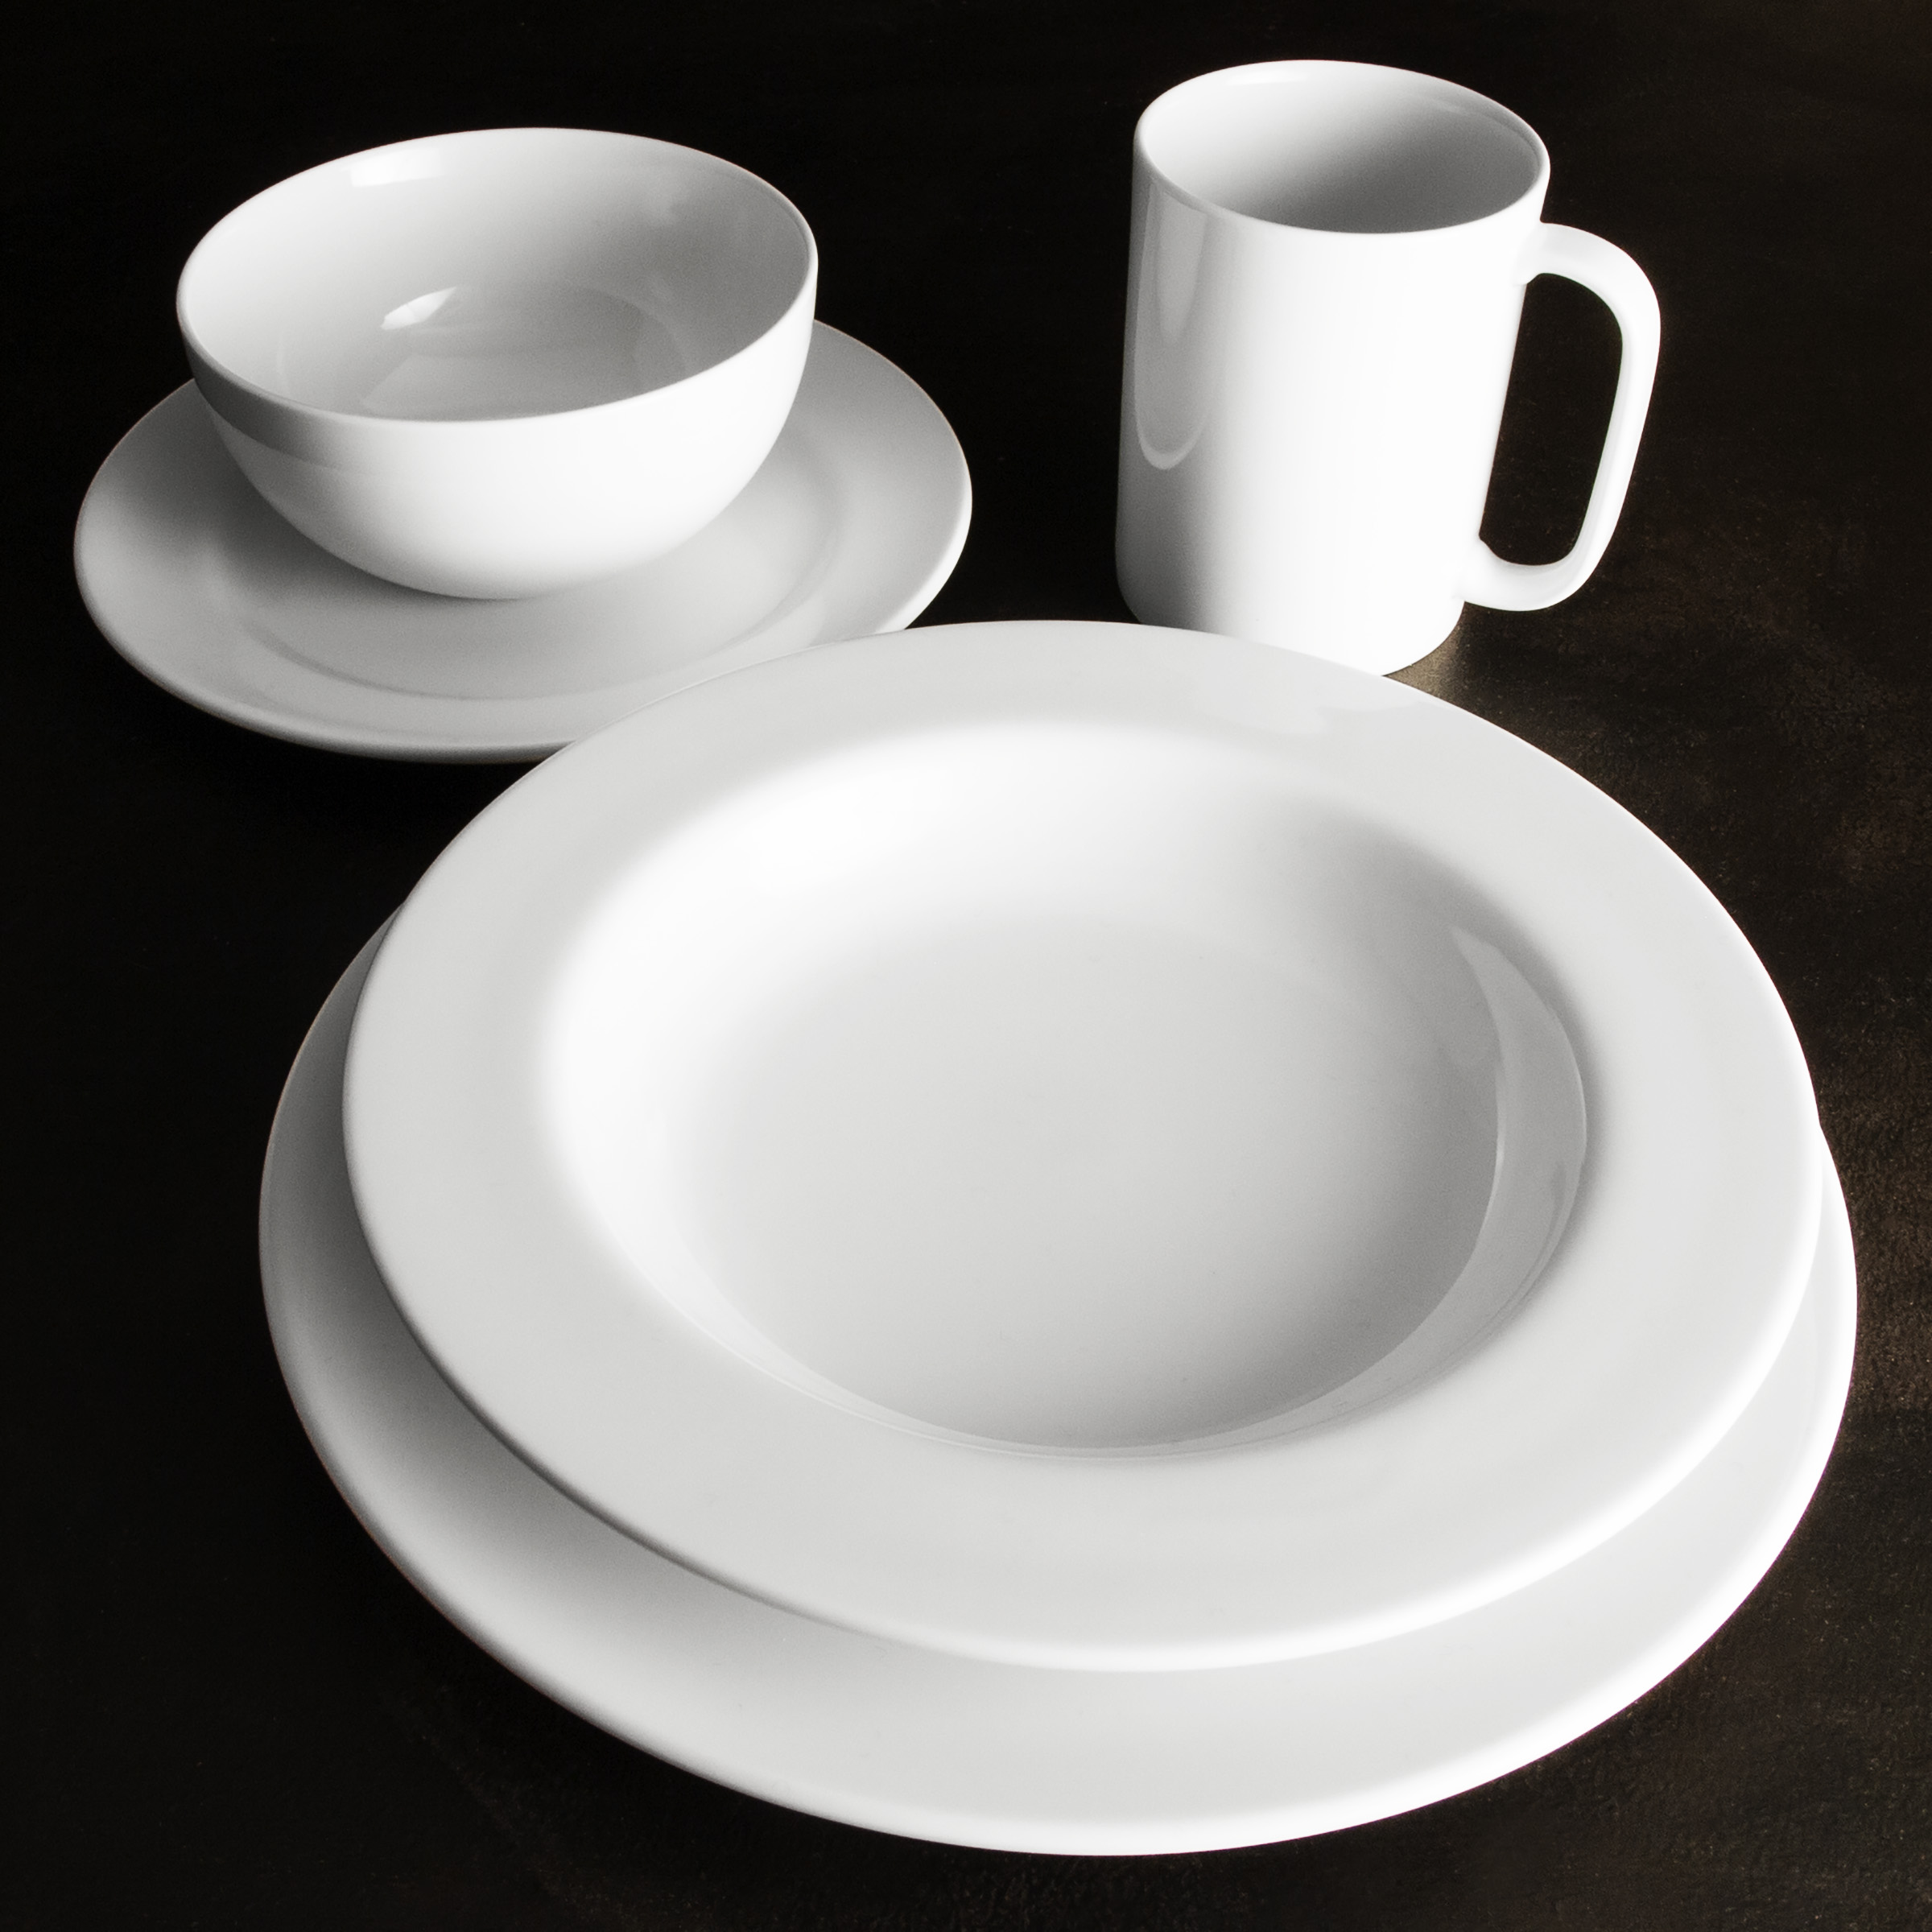 An image of a Dinnerware product